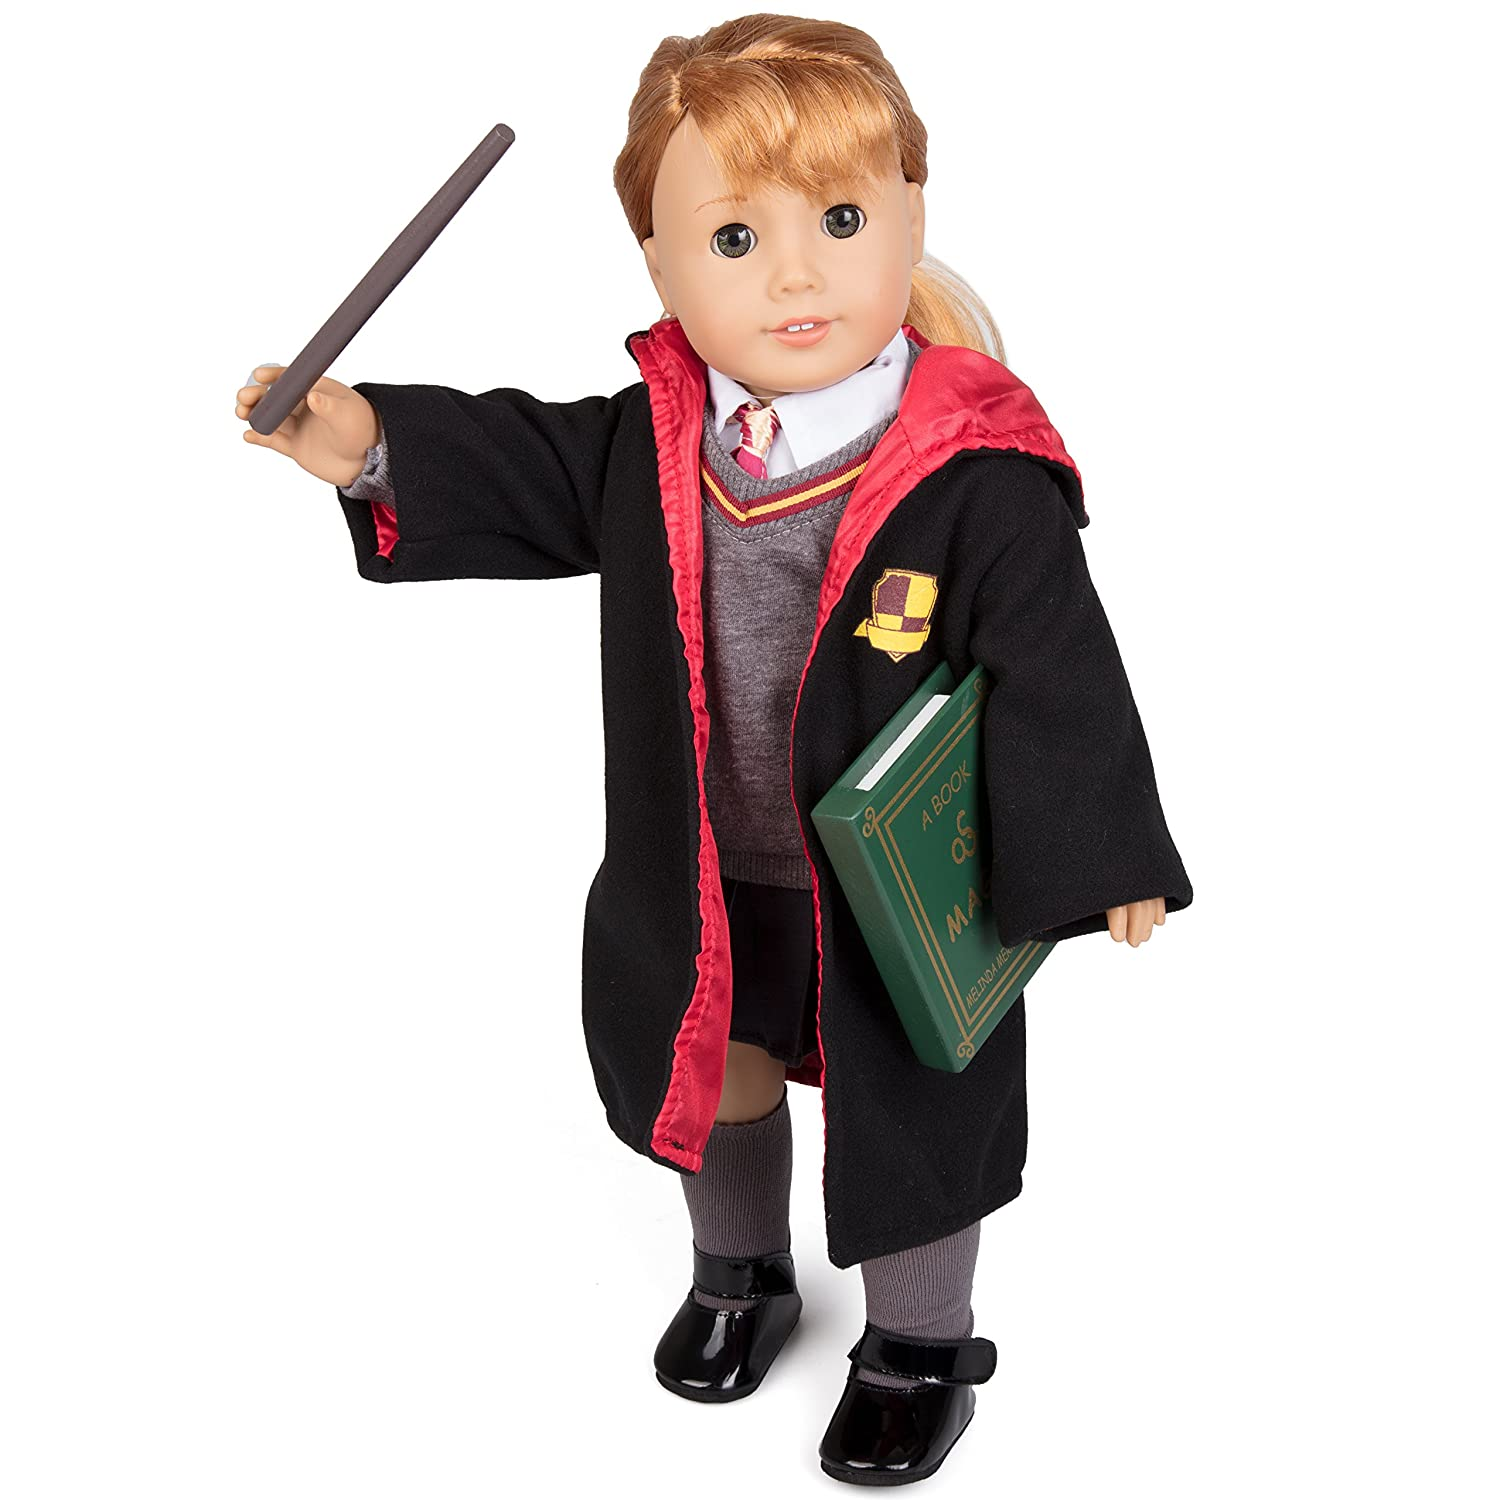 Deluxe Hermione Granger Inspired Doll Clothes for American Girl and 18 Dolls: 9pc Hogwarts like School Uniform Includes- Book, Wand, Robe, Shirt, Skirt, Sweater, Tie, Socks and Shoes Dress Along Dolly